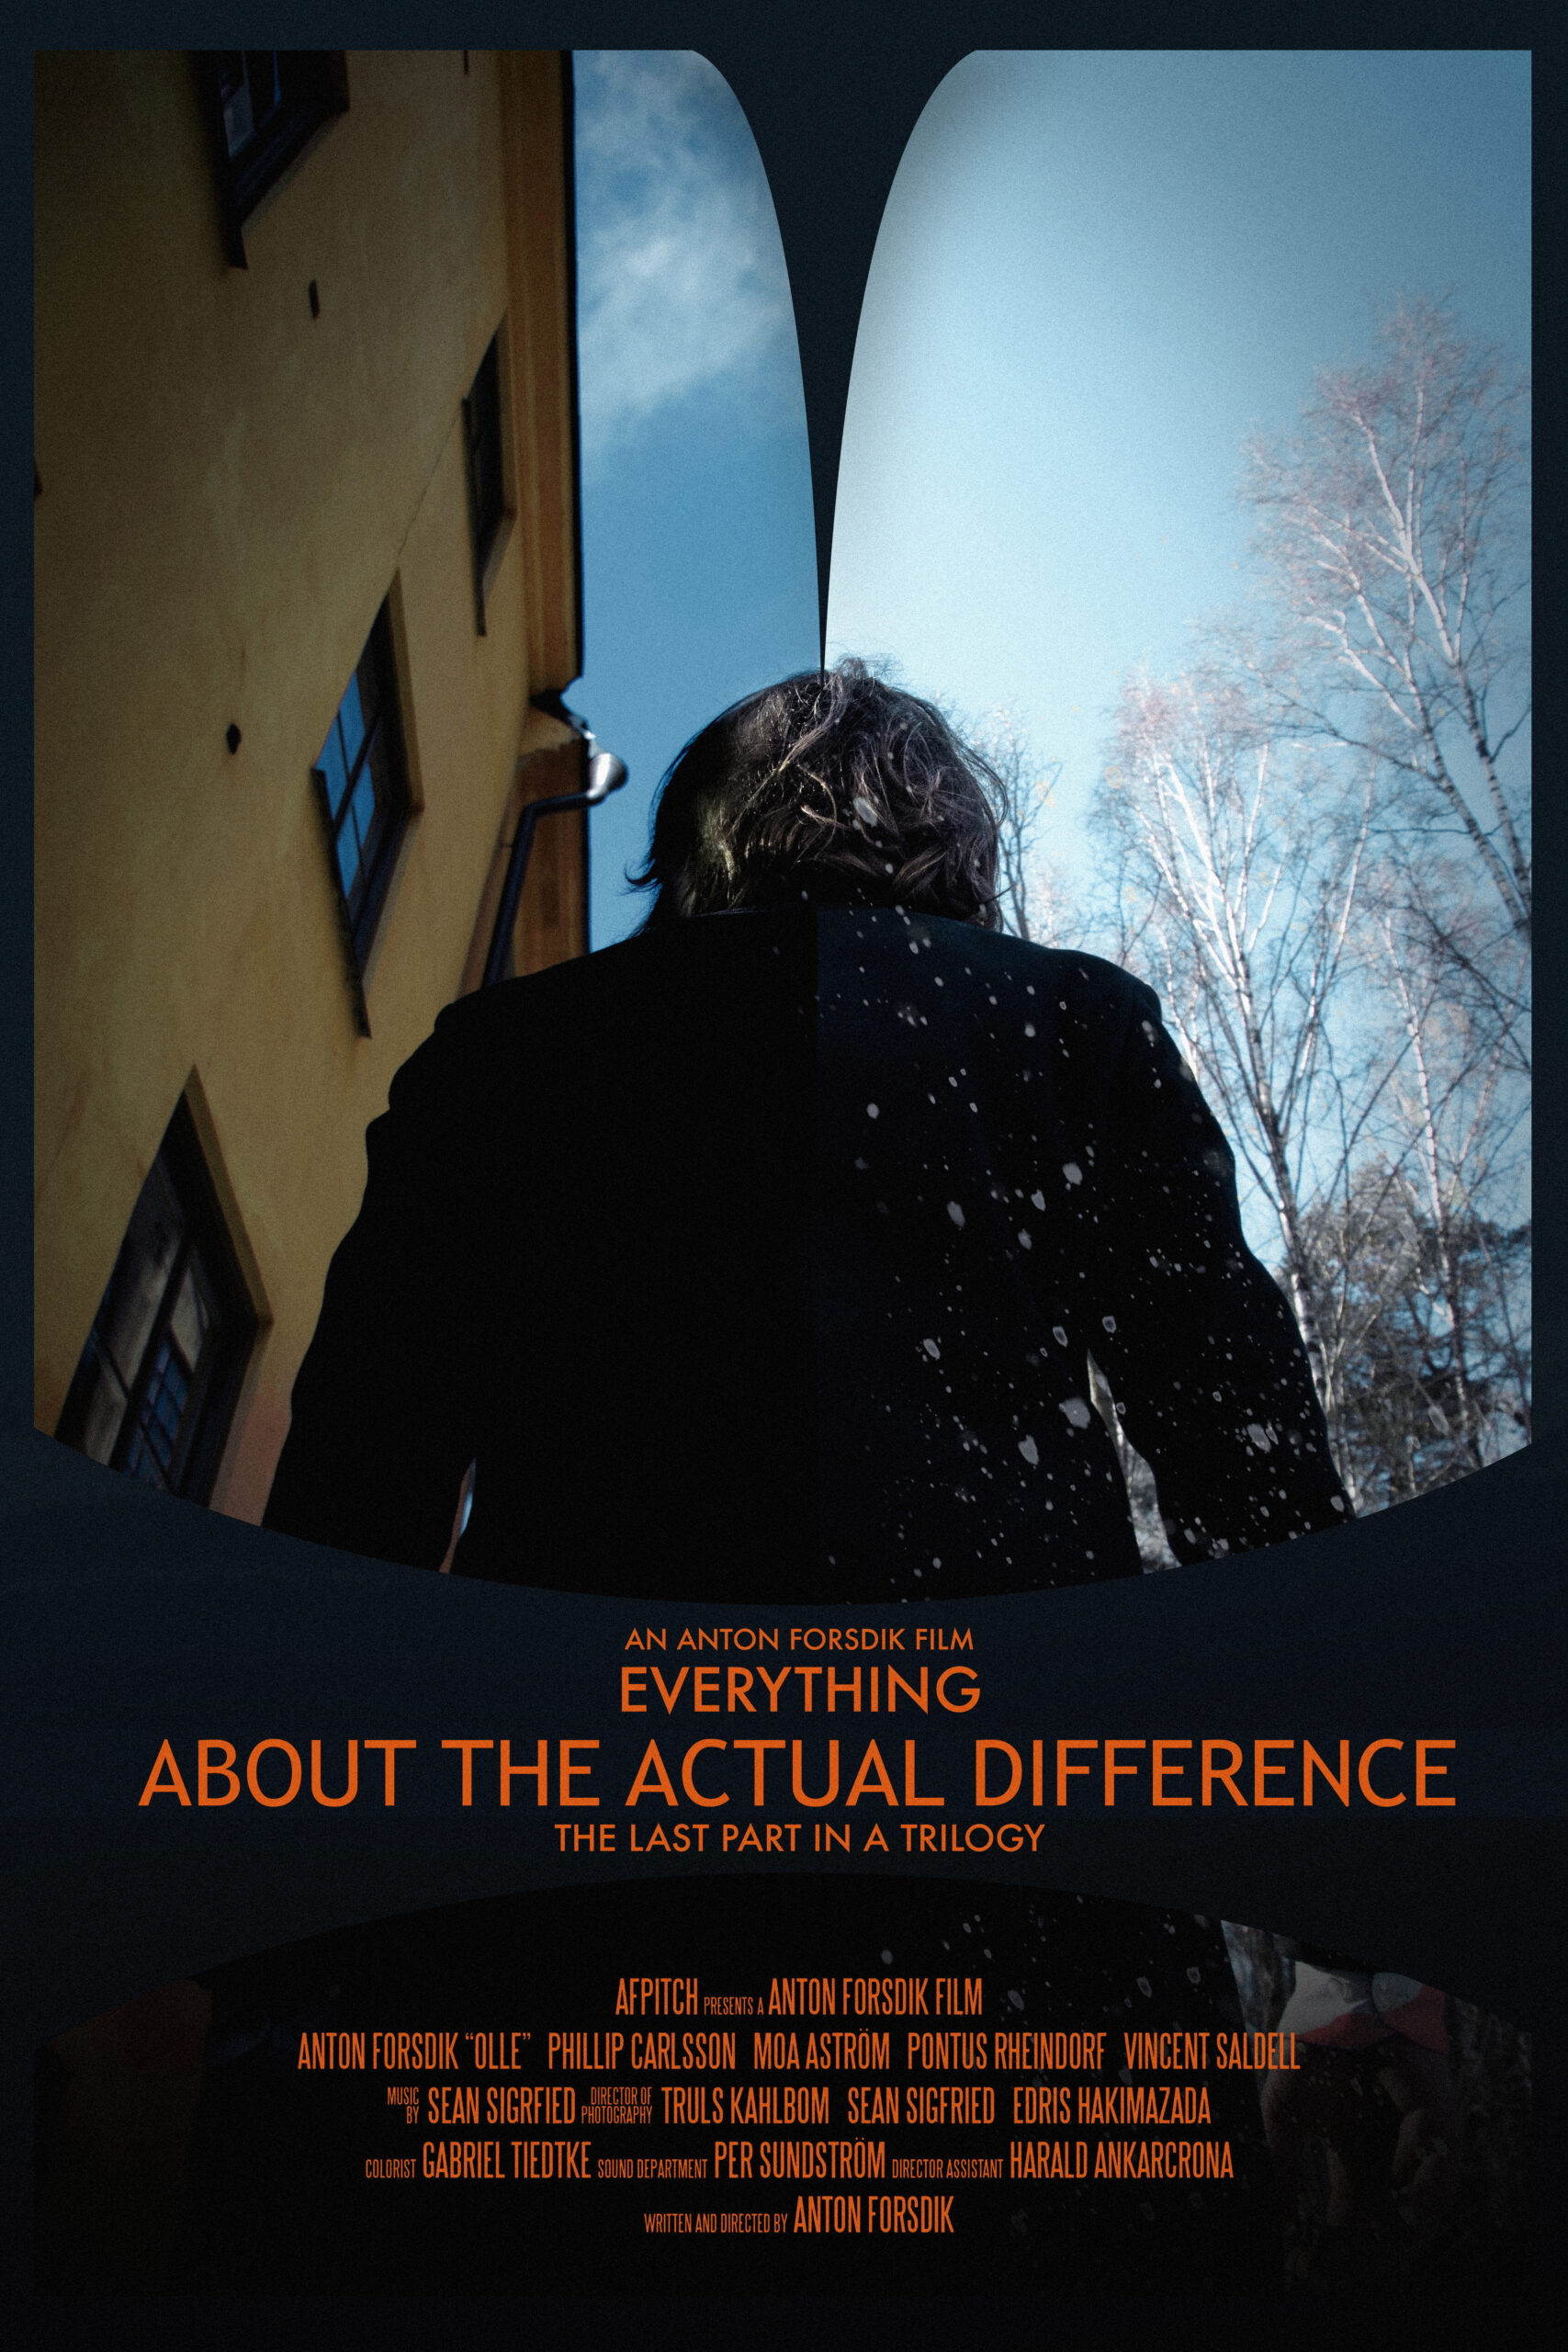 EVERYTHING ABOUT THE ACTUAL DIFFERENCE poster